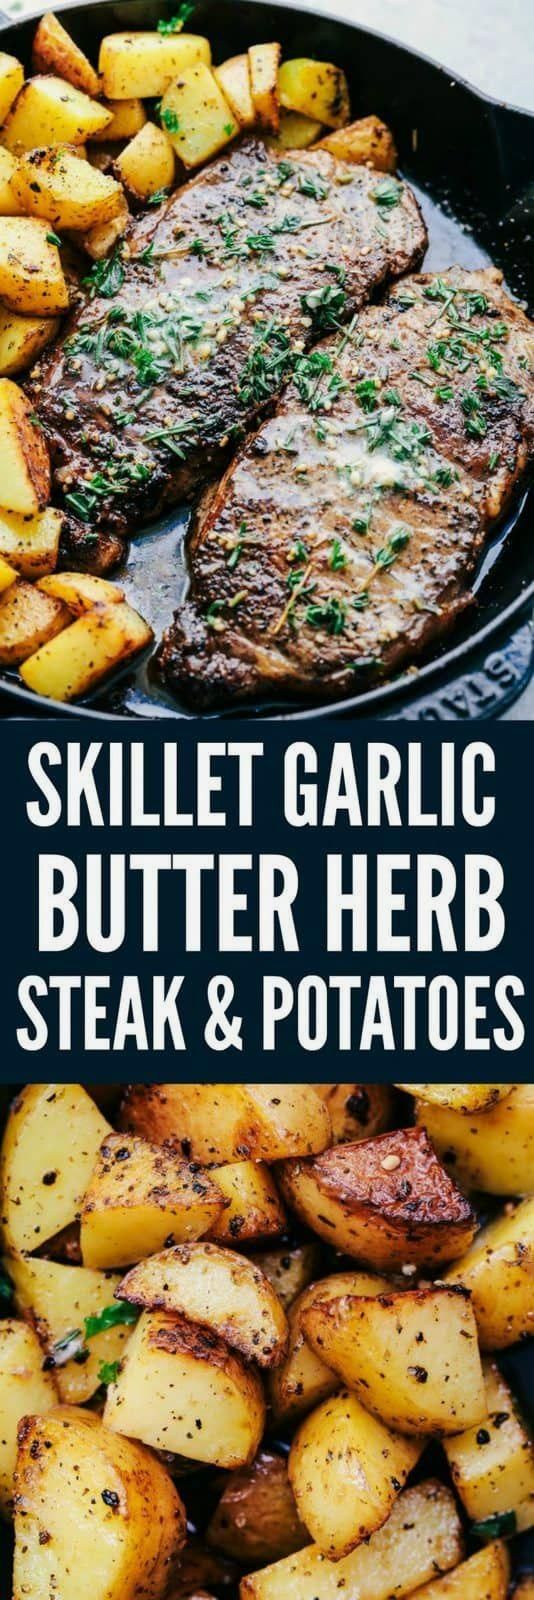 Skillet Garlic Butter Herb Steak and Potatoes is pan seared and cooked to perfec...